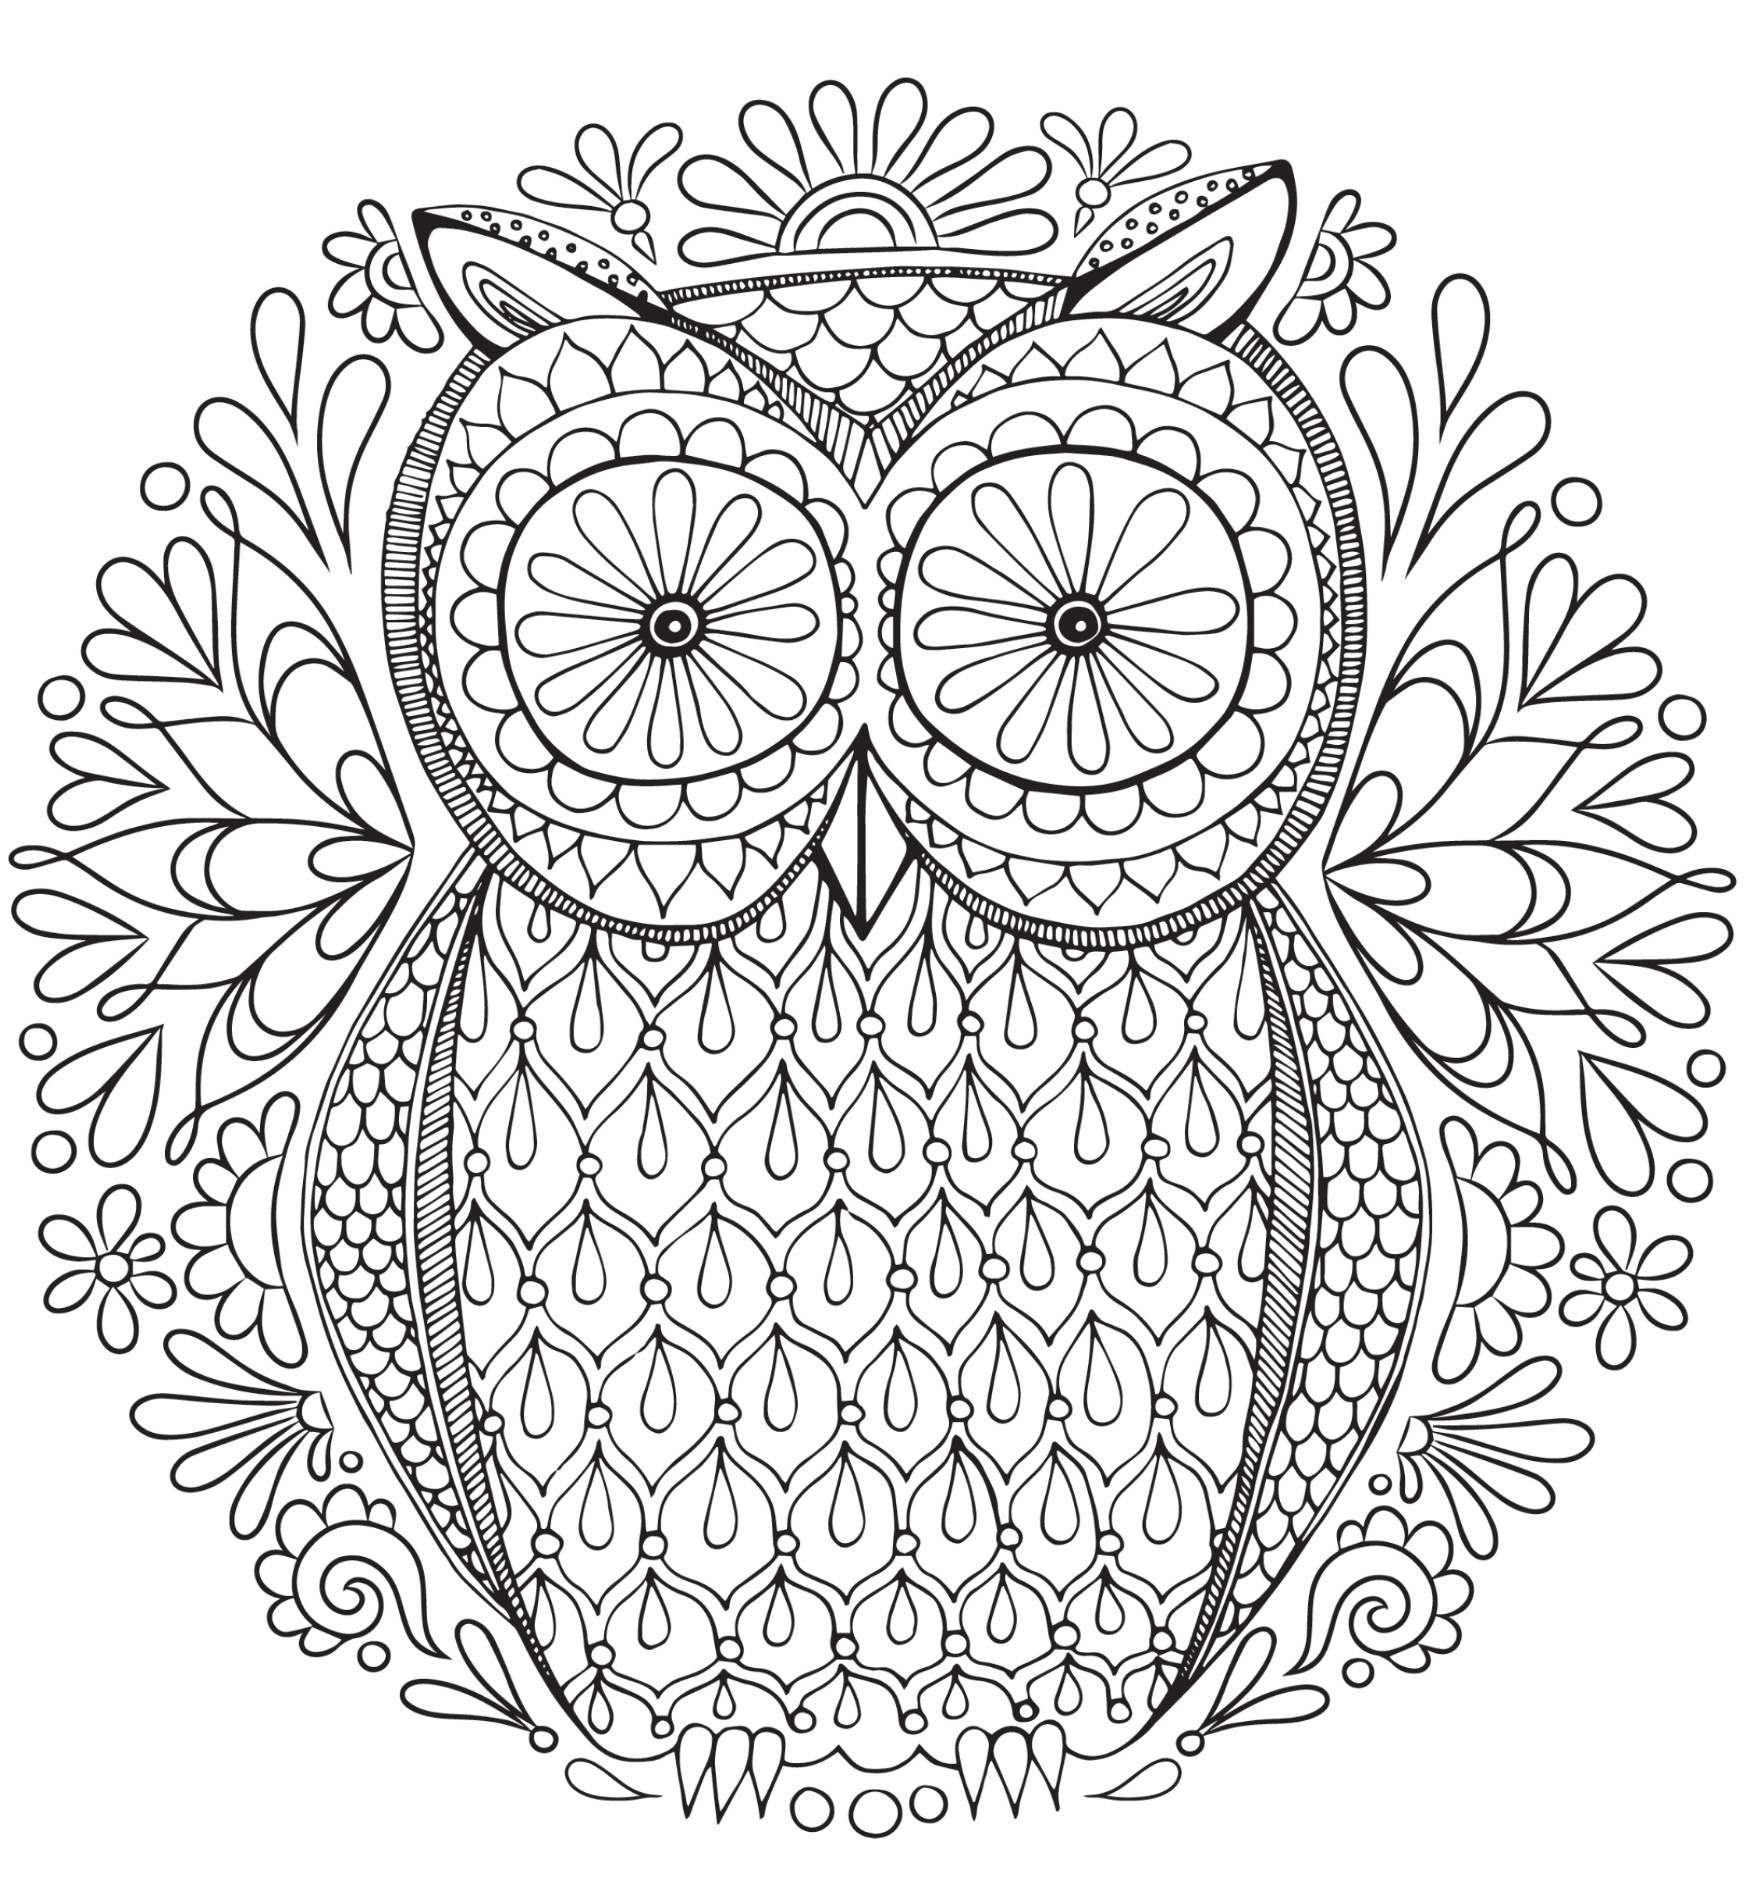 Best ideas about Adult Printable Coloring Pages . Save or Pin 20 Free Adult Colouring Pages The Organised Housewife Now.